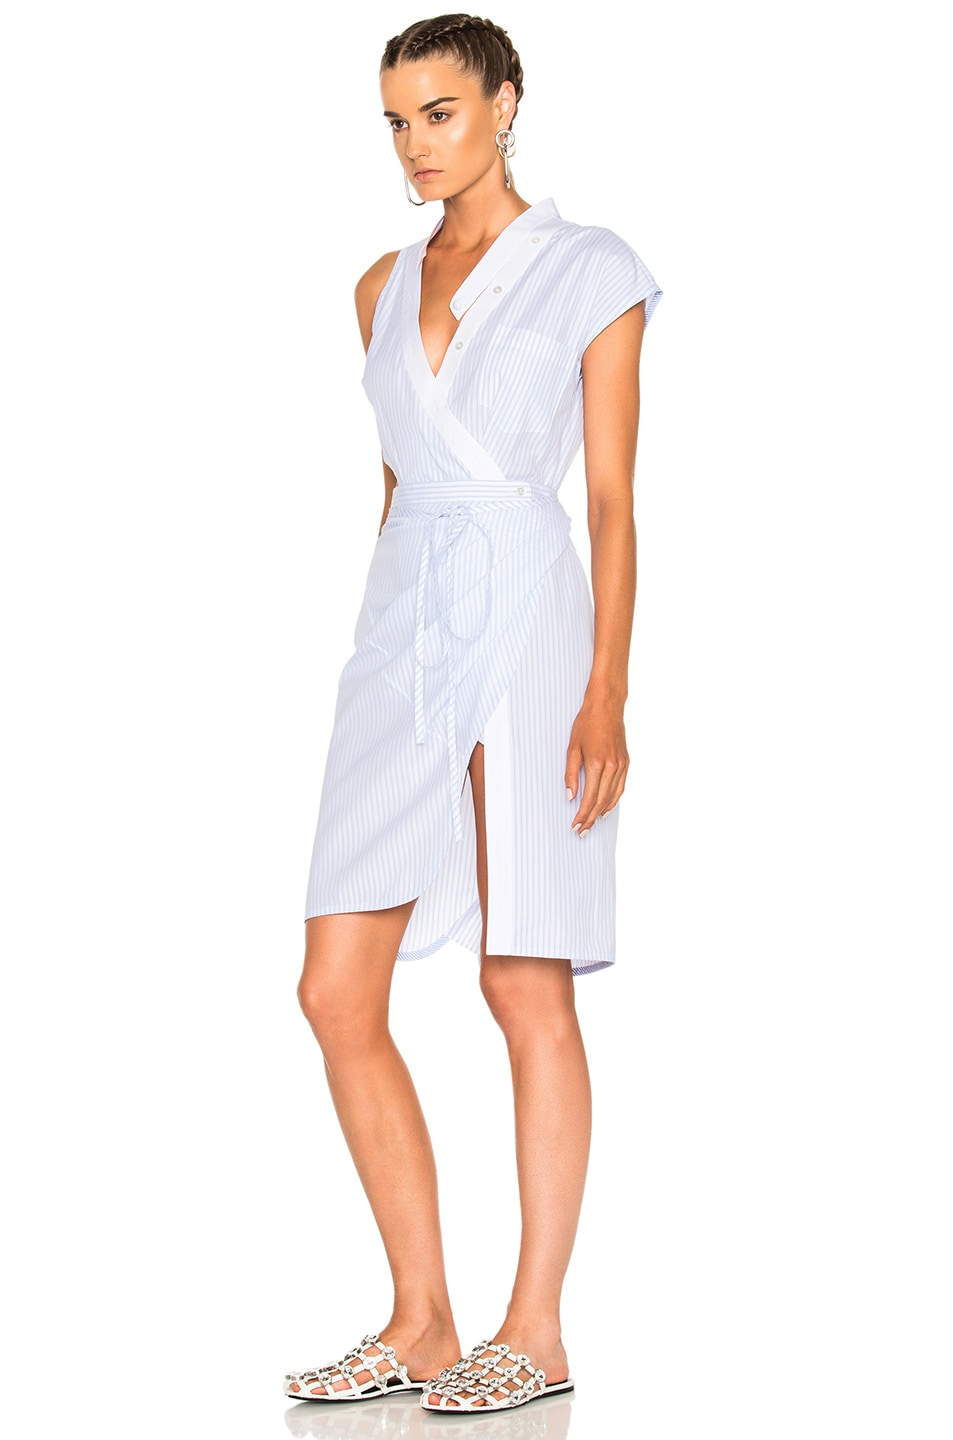 455143986c Image 2 of Alexander Wang Asymmetric Deconstructed Shirt Wrap Dress in  Oxford Multi